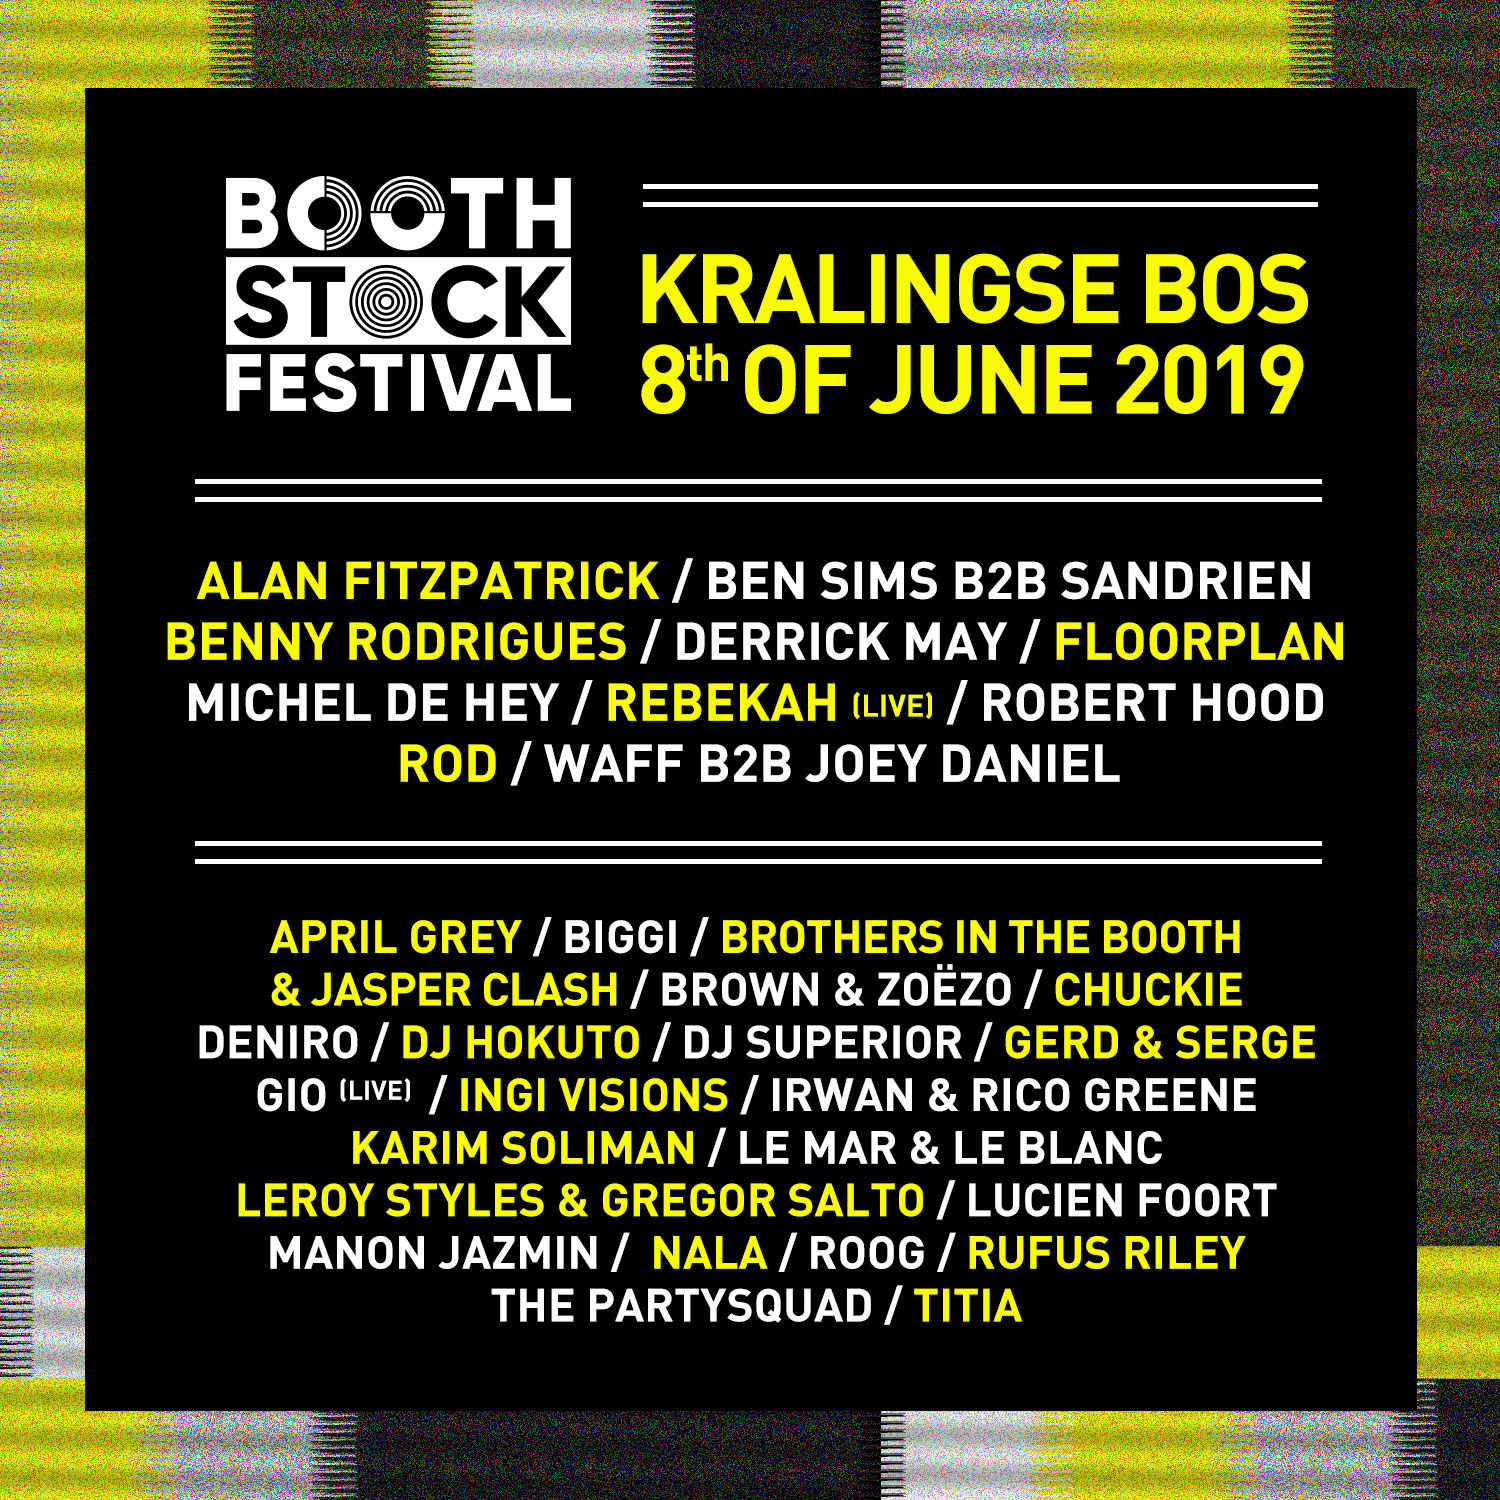 BOOTHSTOCK LINE UP